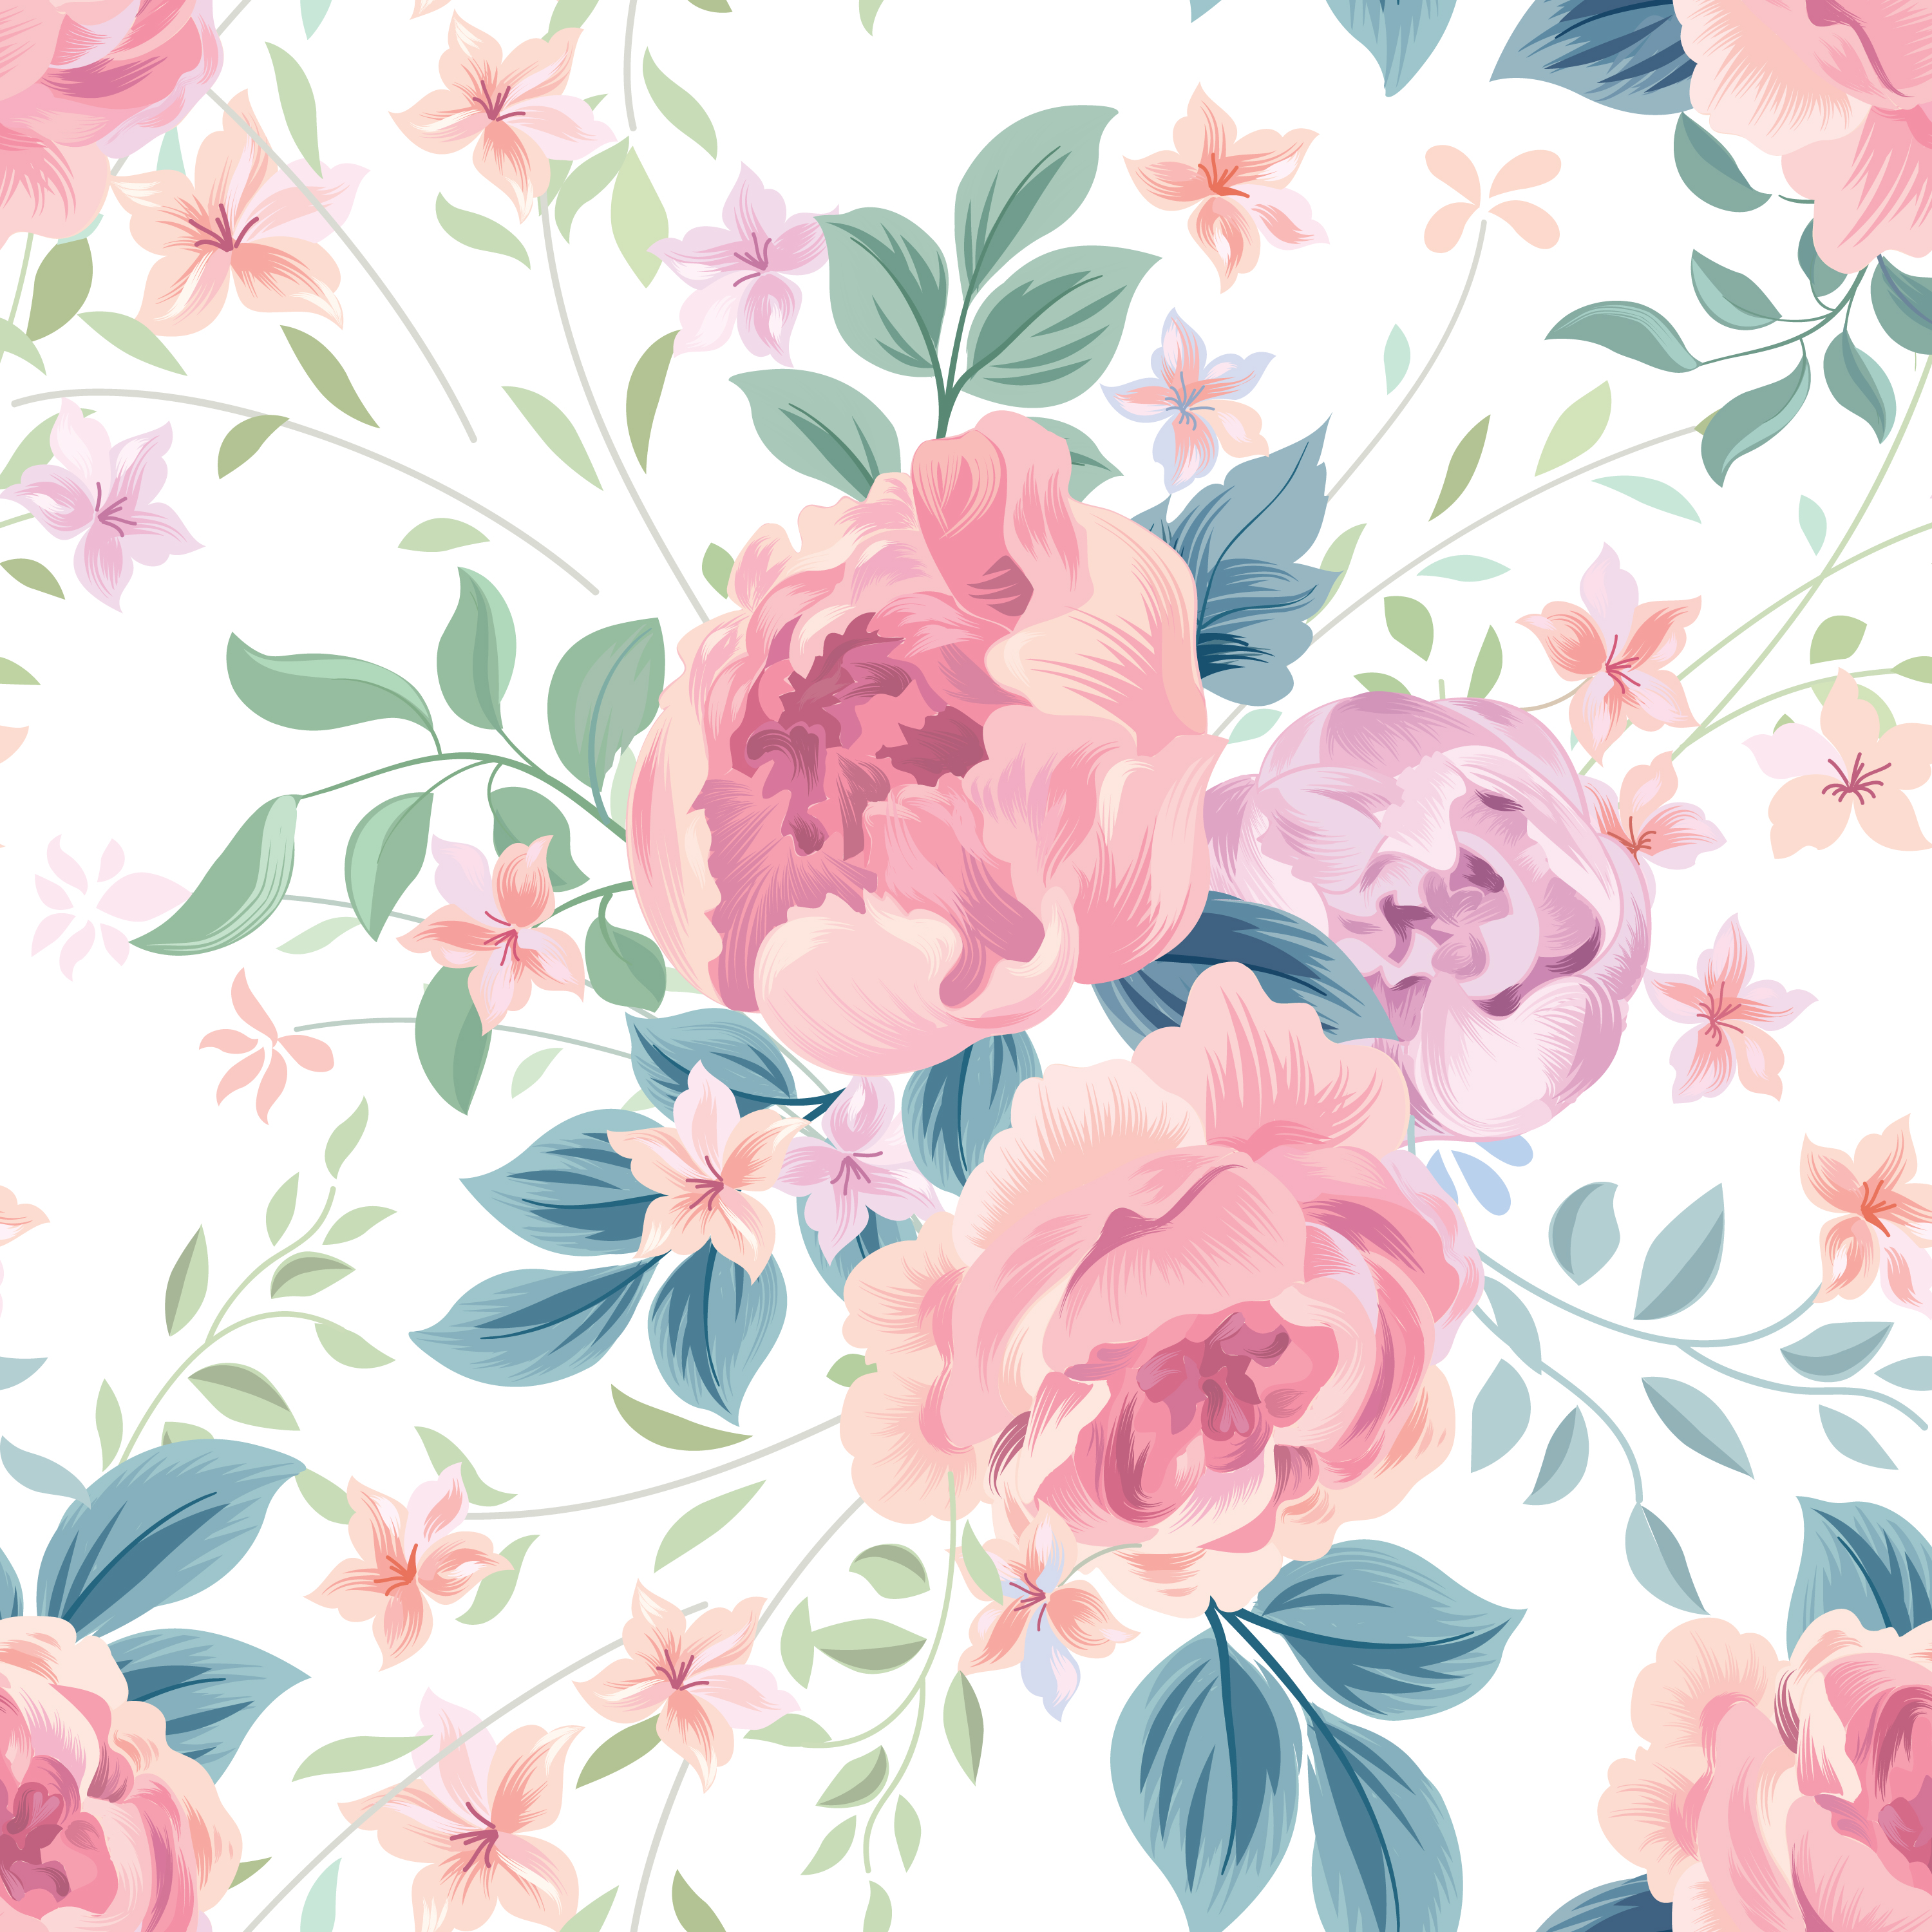 Floral Seamless Pattern Flower Rose White Background Flourish